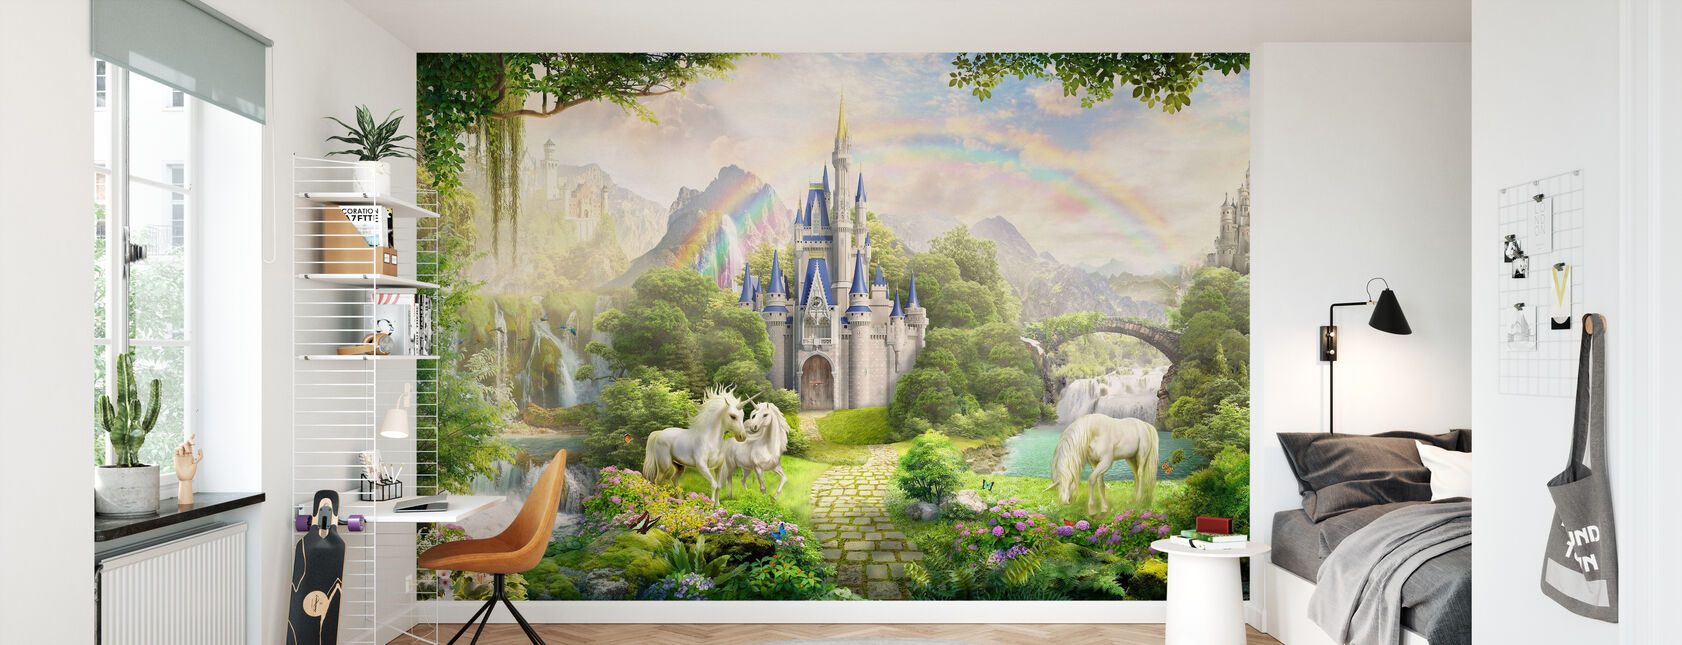 Unicorns Residence - Wallpaper - Kids Room